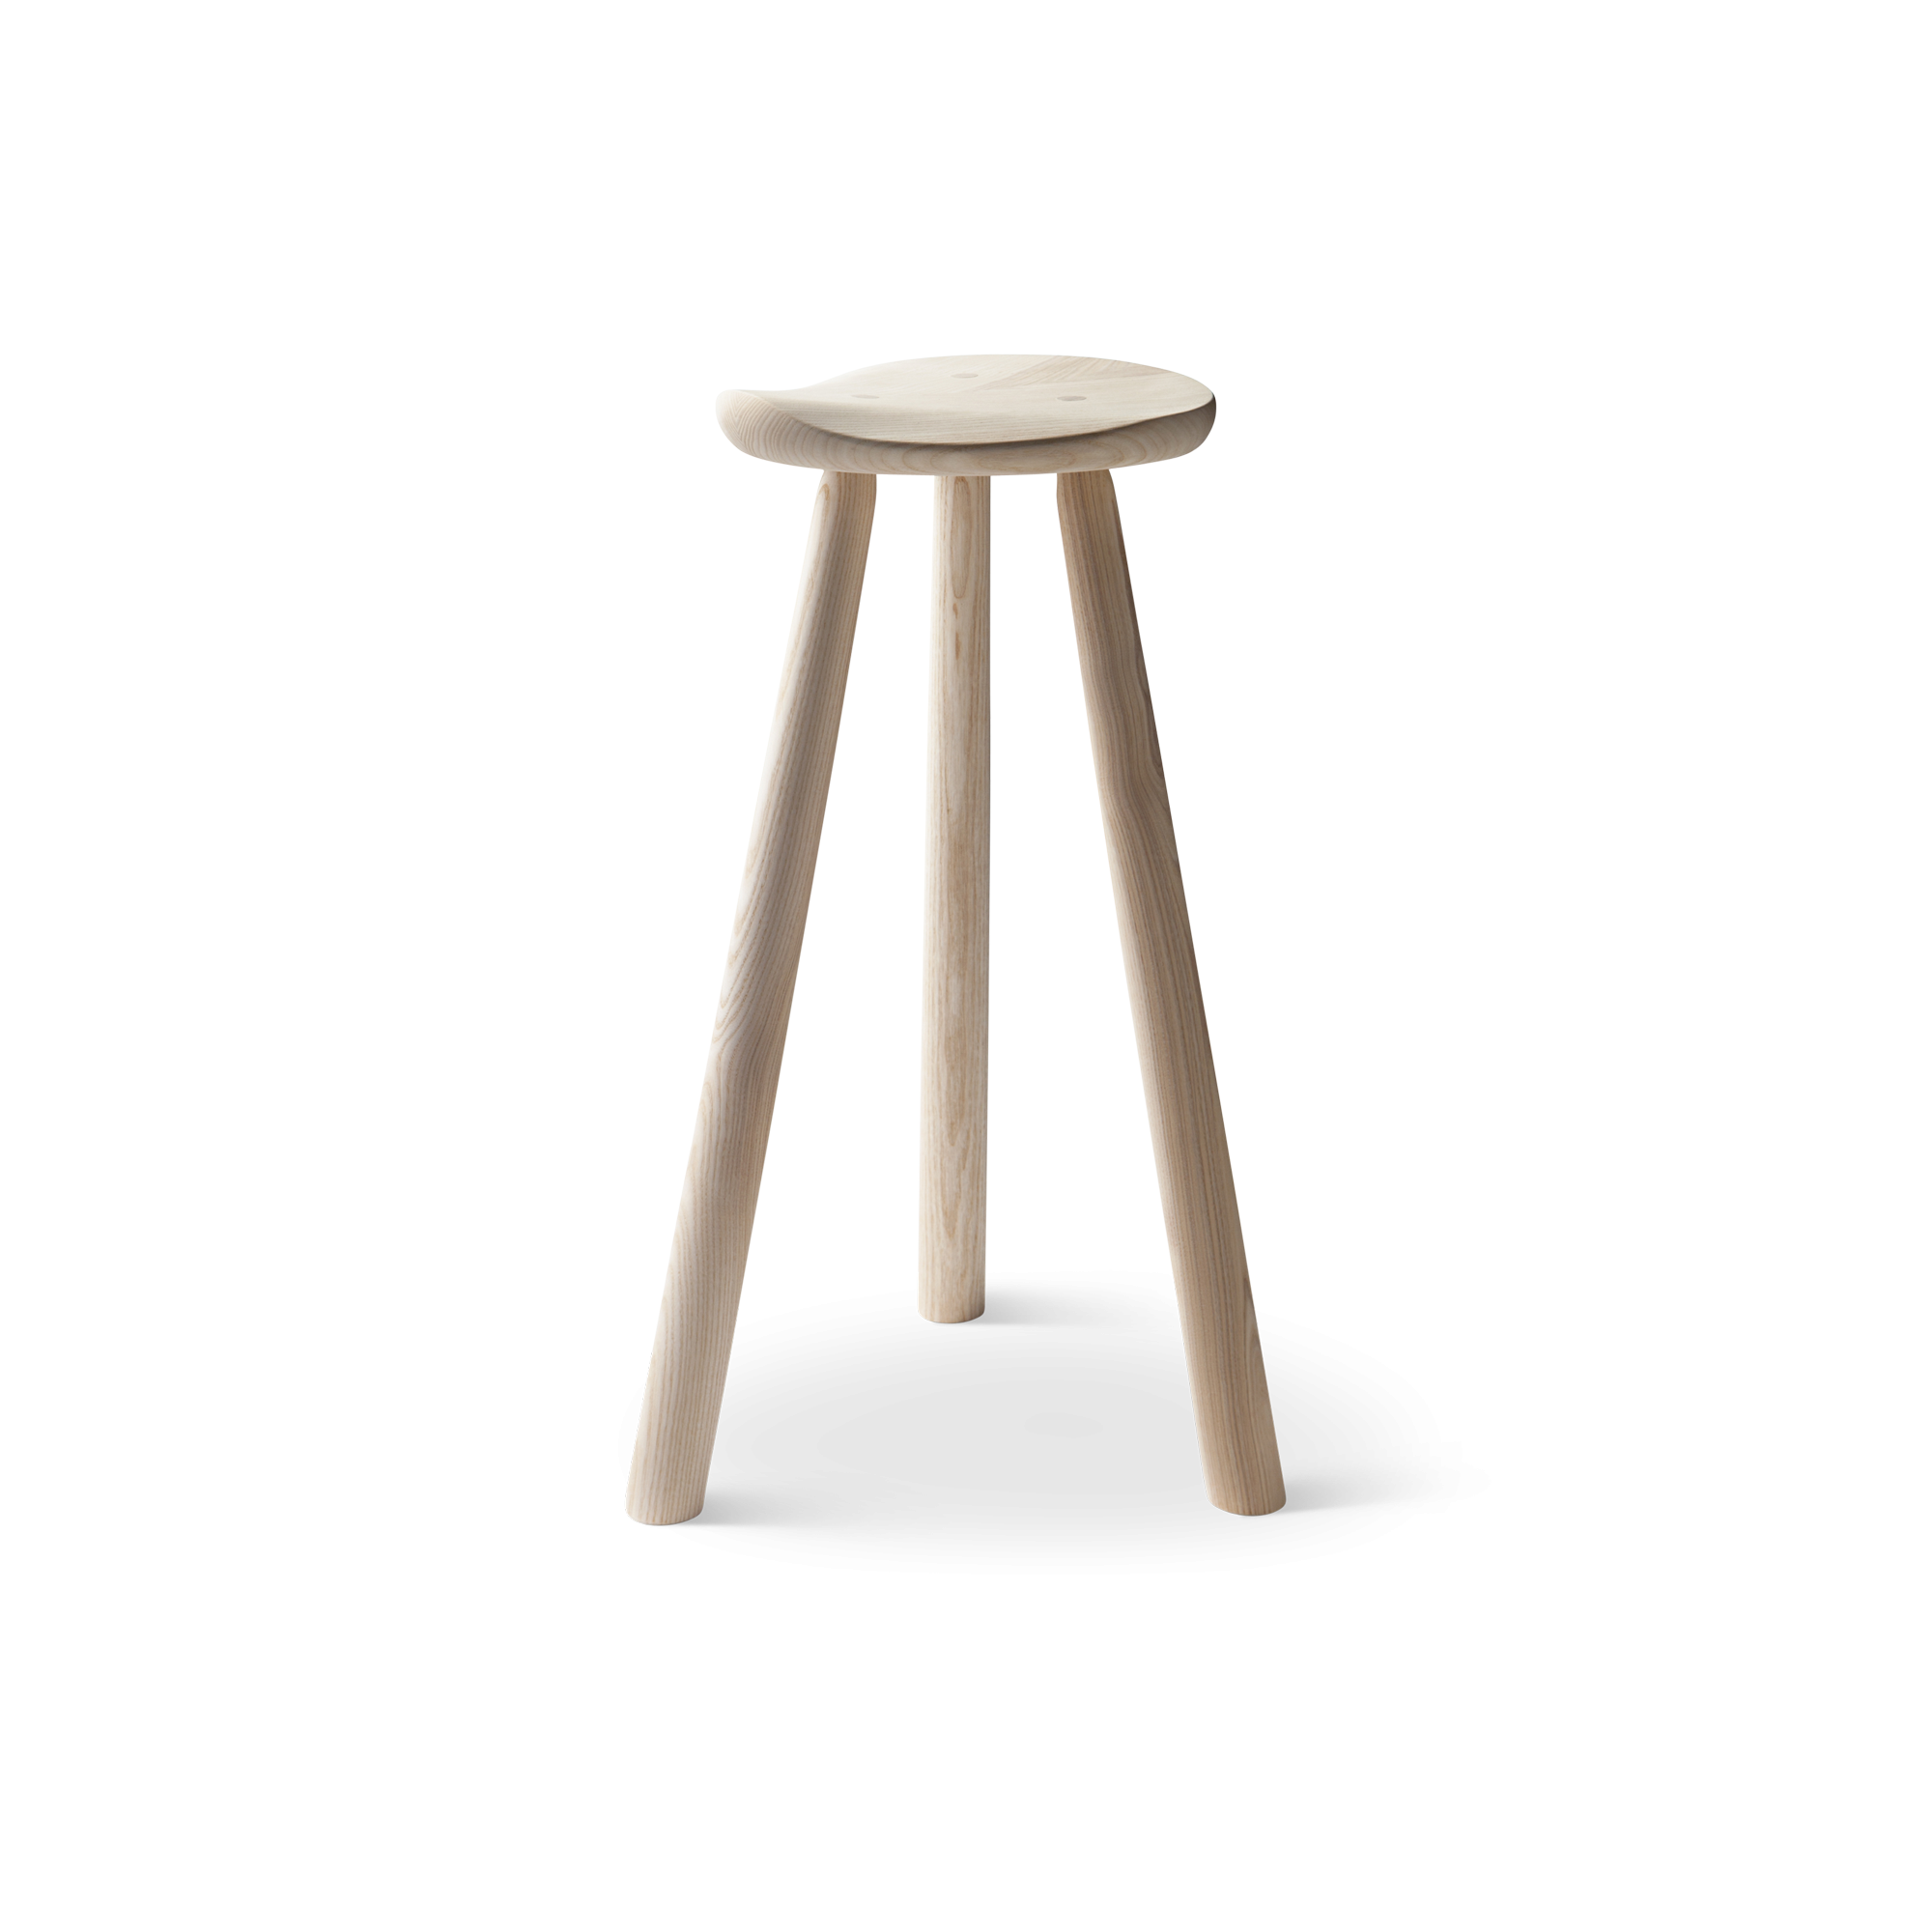 cafe-classic-rmj1-2-3-stool